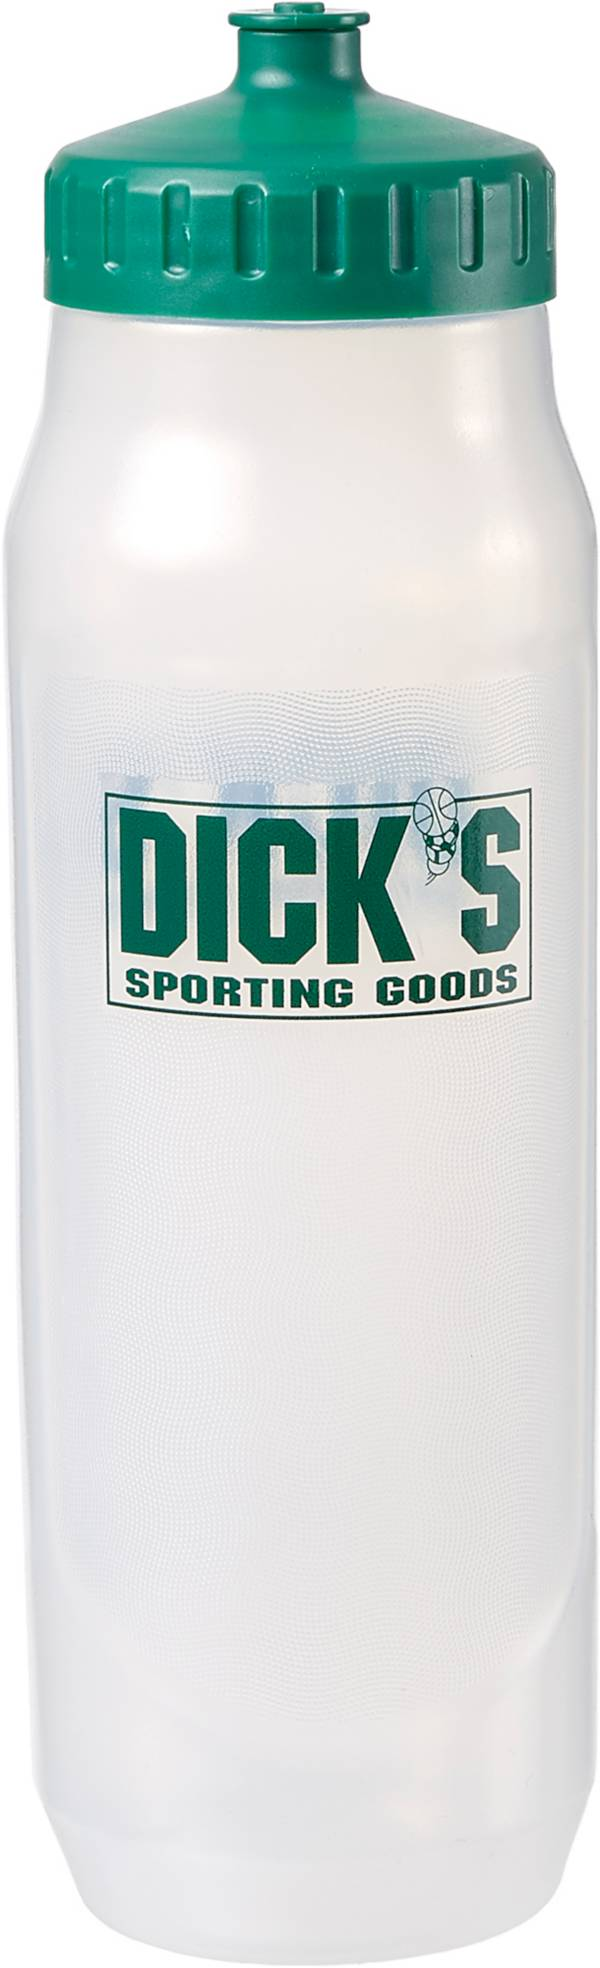 DICK'S Sporting Goods Push Cap 32 oz. Squeeze Bottle product image